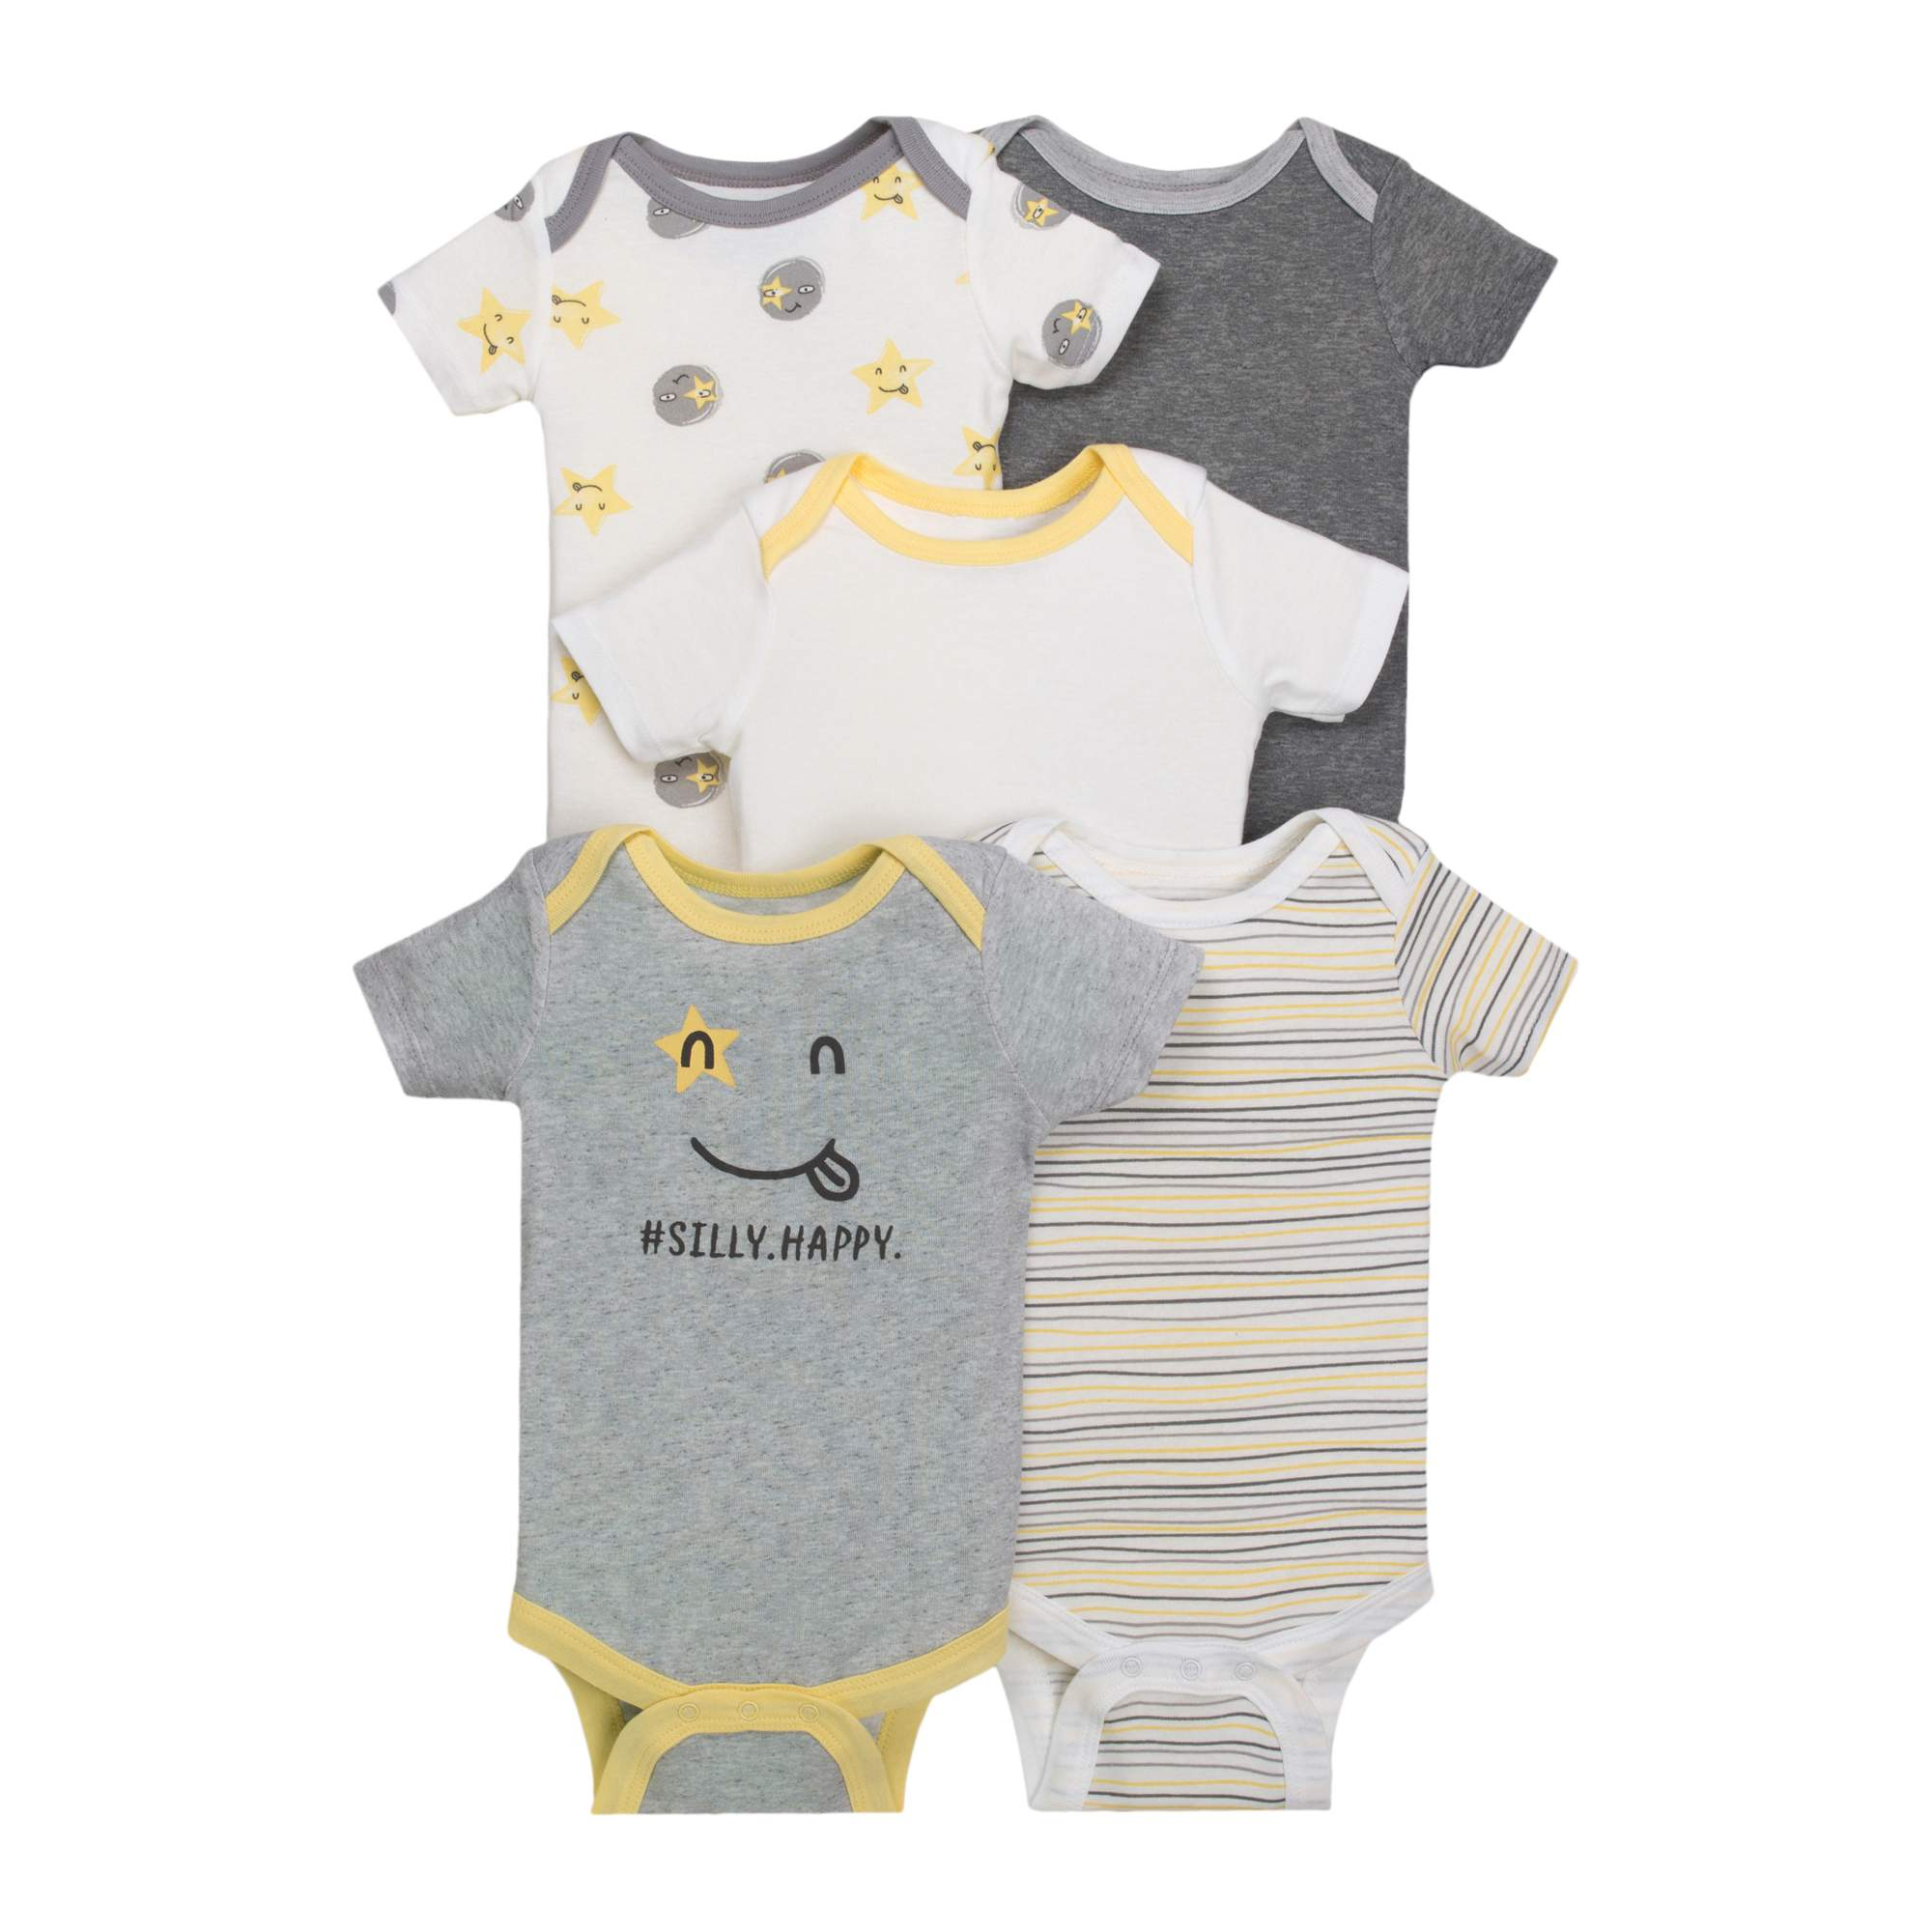 Newborn Baby Boy or Girl Unisex Assorted Short Sleeve Bodysuit, 5-pack